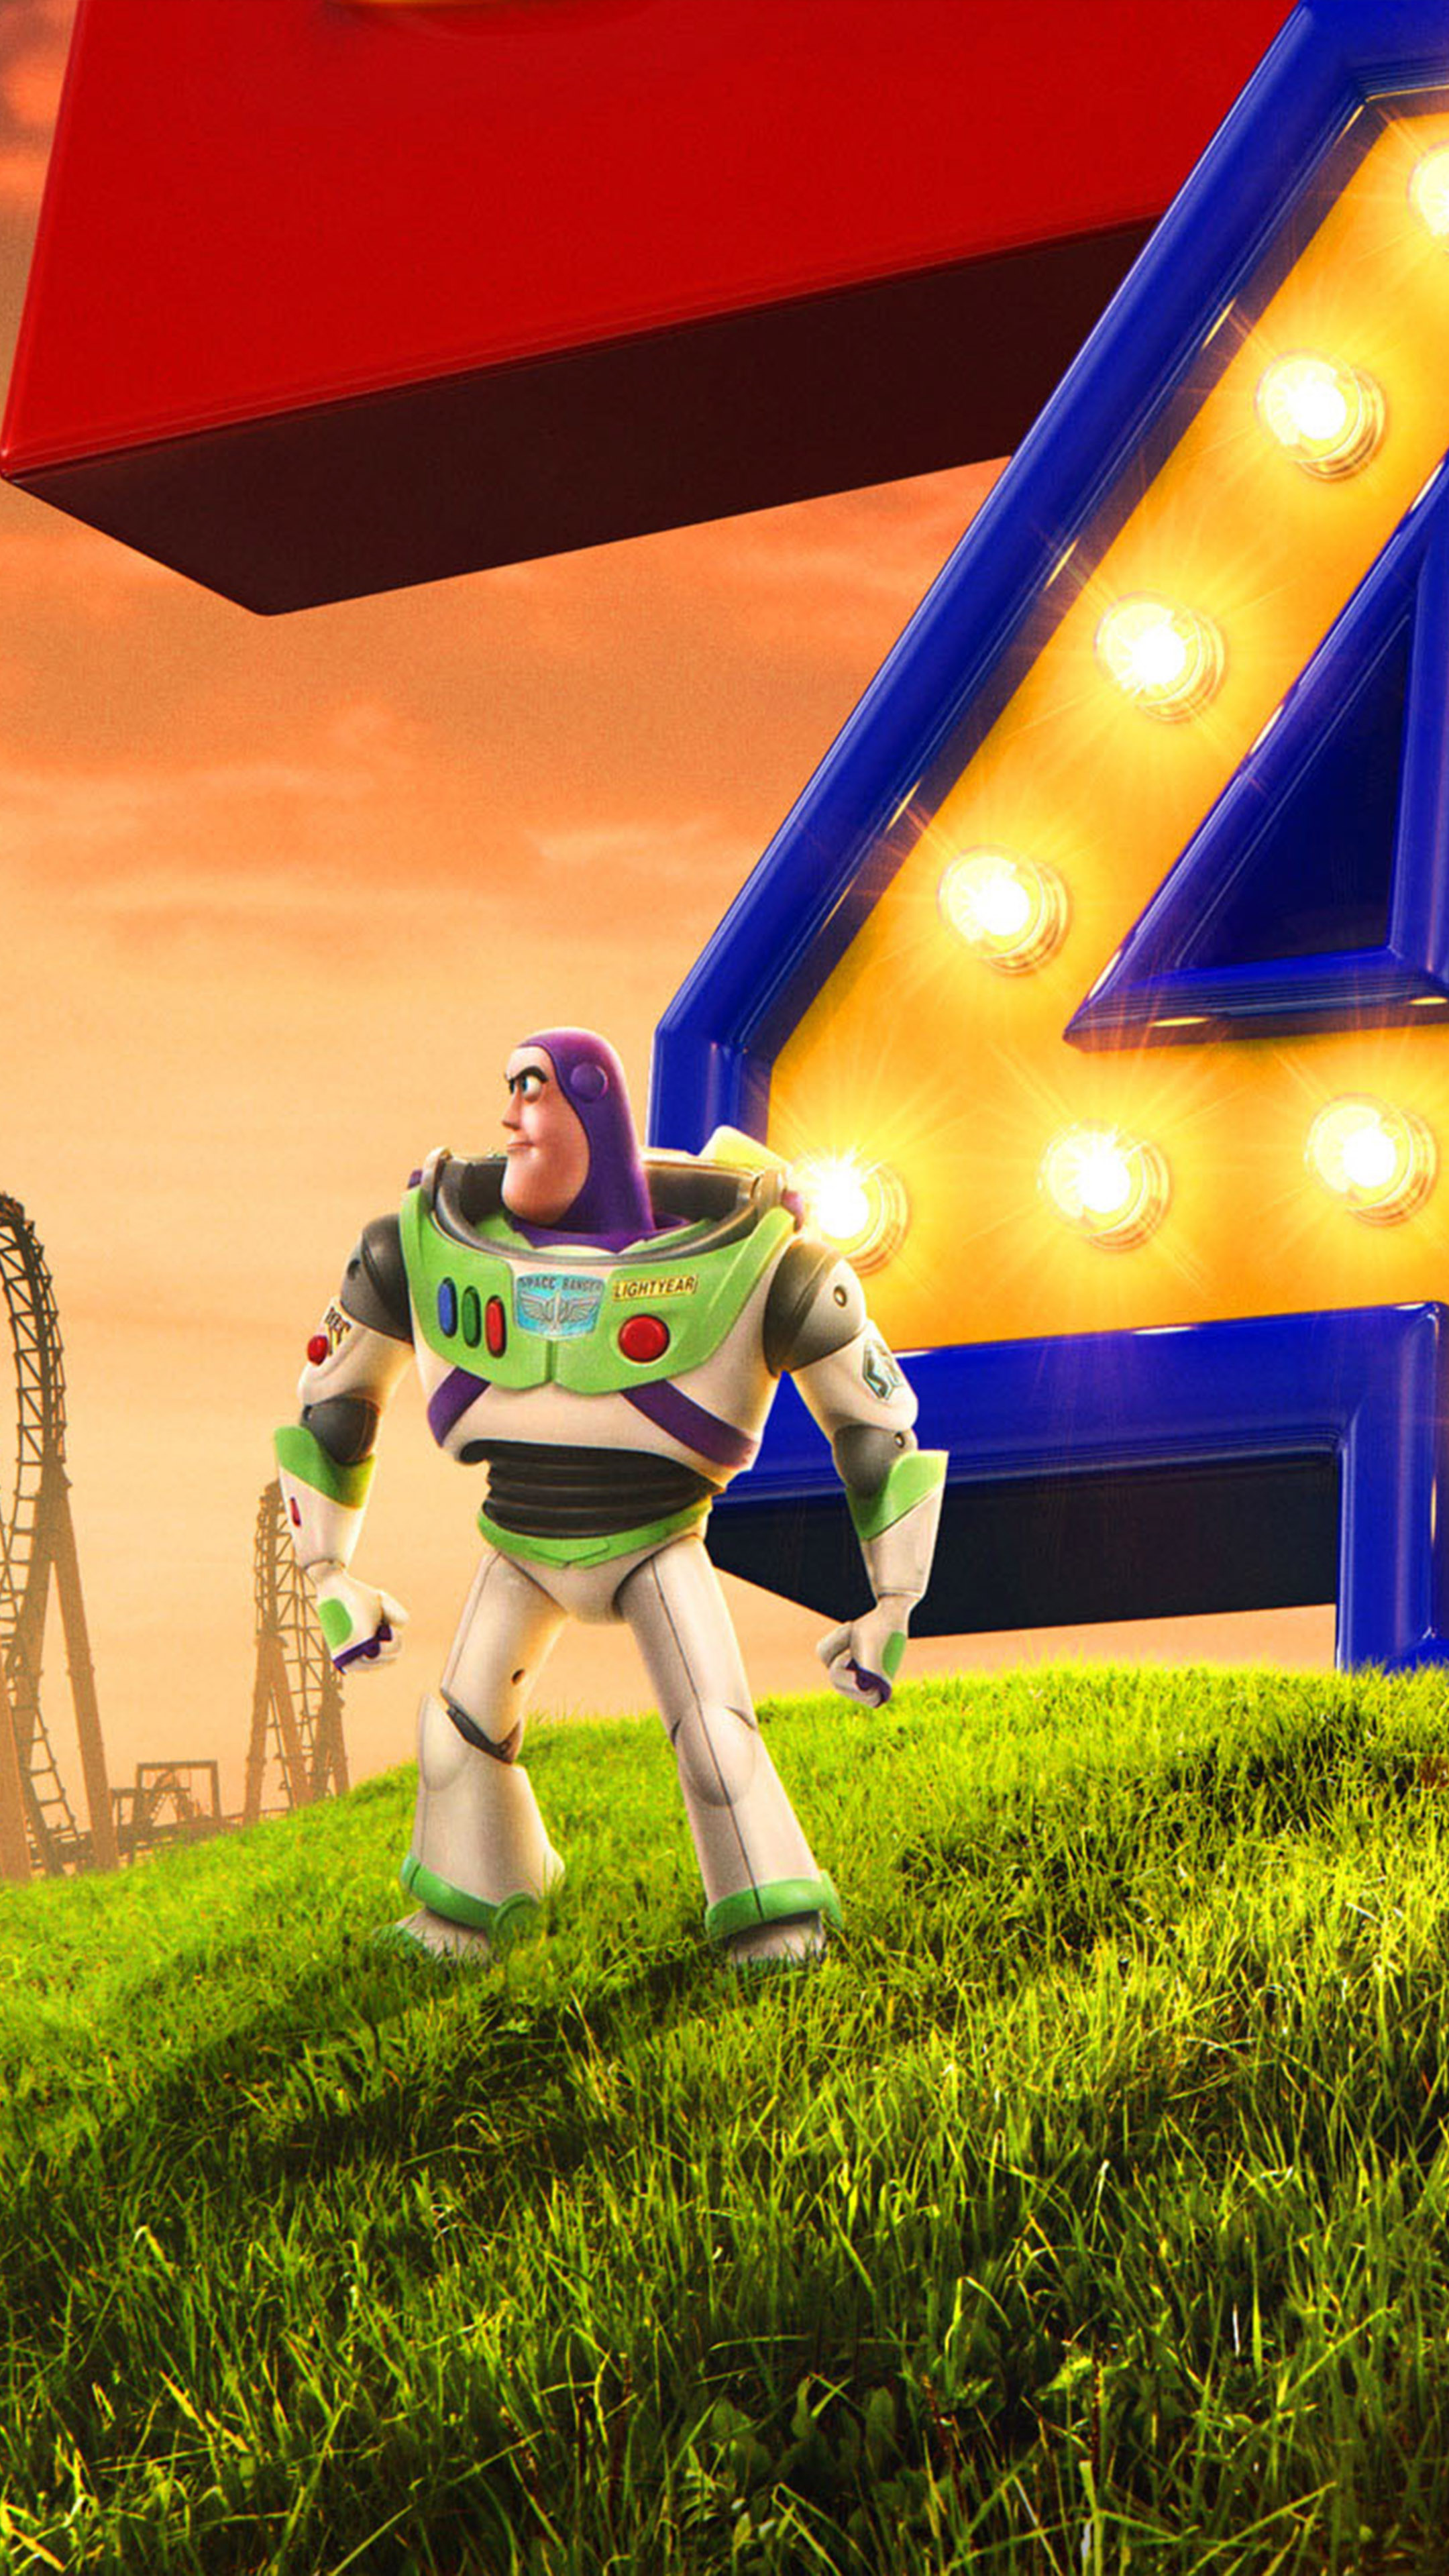 Toy Story 4 Buzz Lightyear 2019 Animation Free 4k Ultra Hd